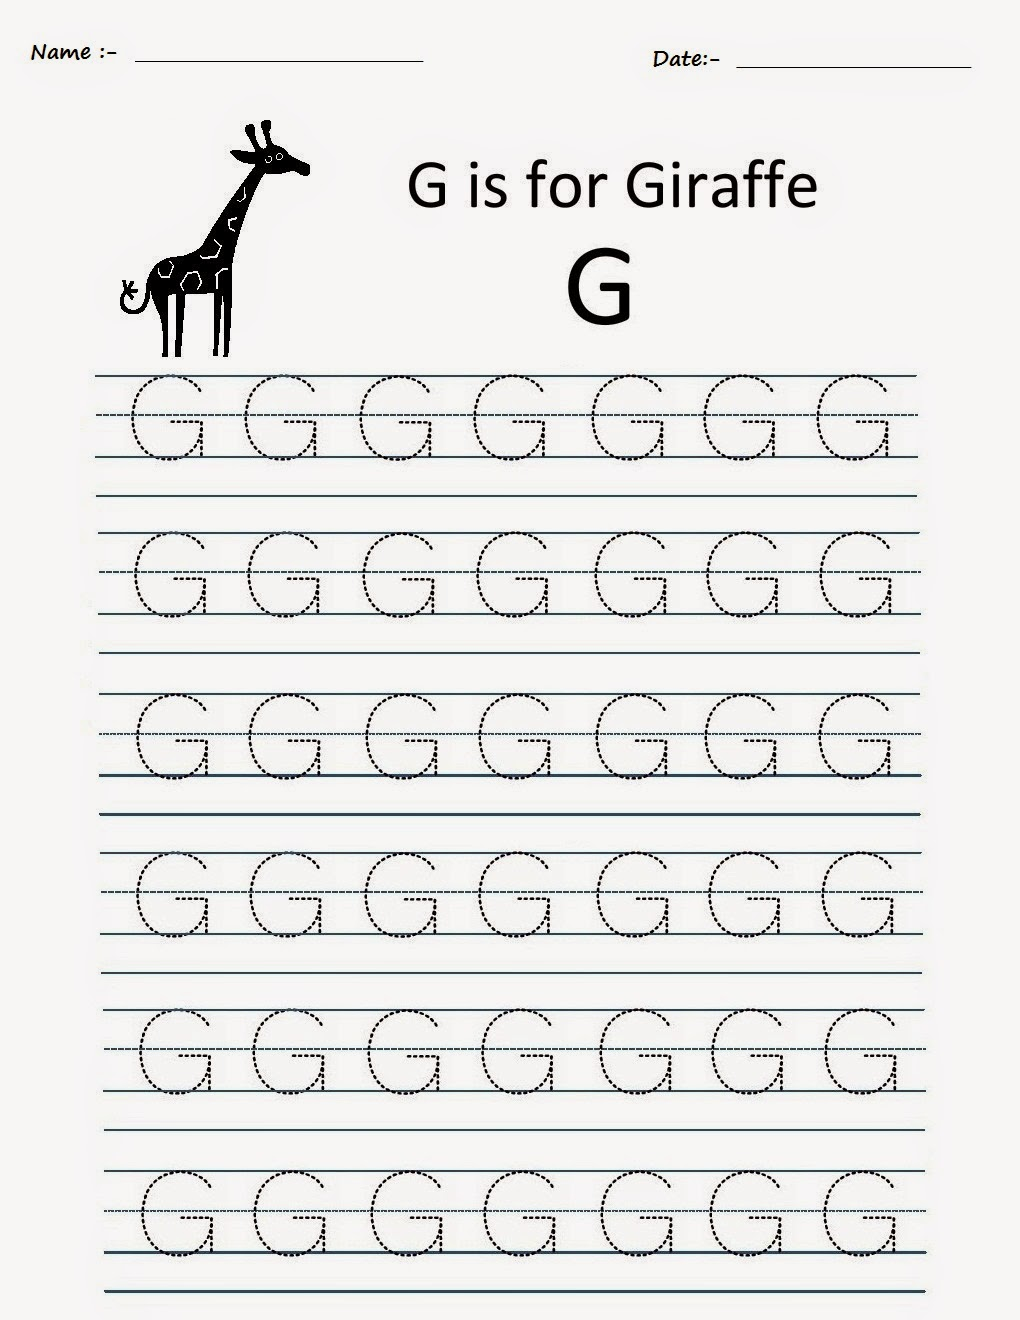 Kindergarten Worksheets Printable Tracing Worksheets Alphabet G – G Worksheets for Kindergarten